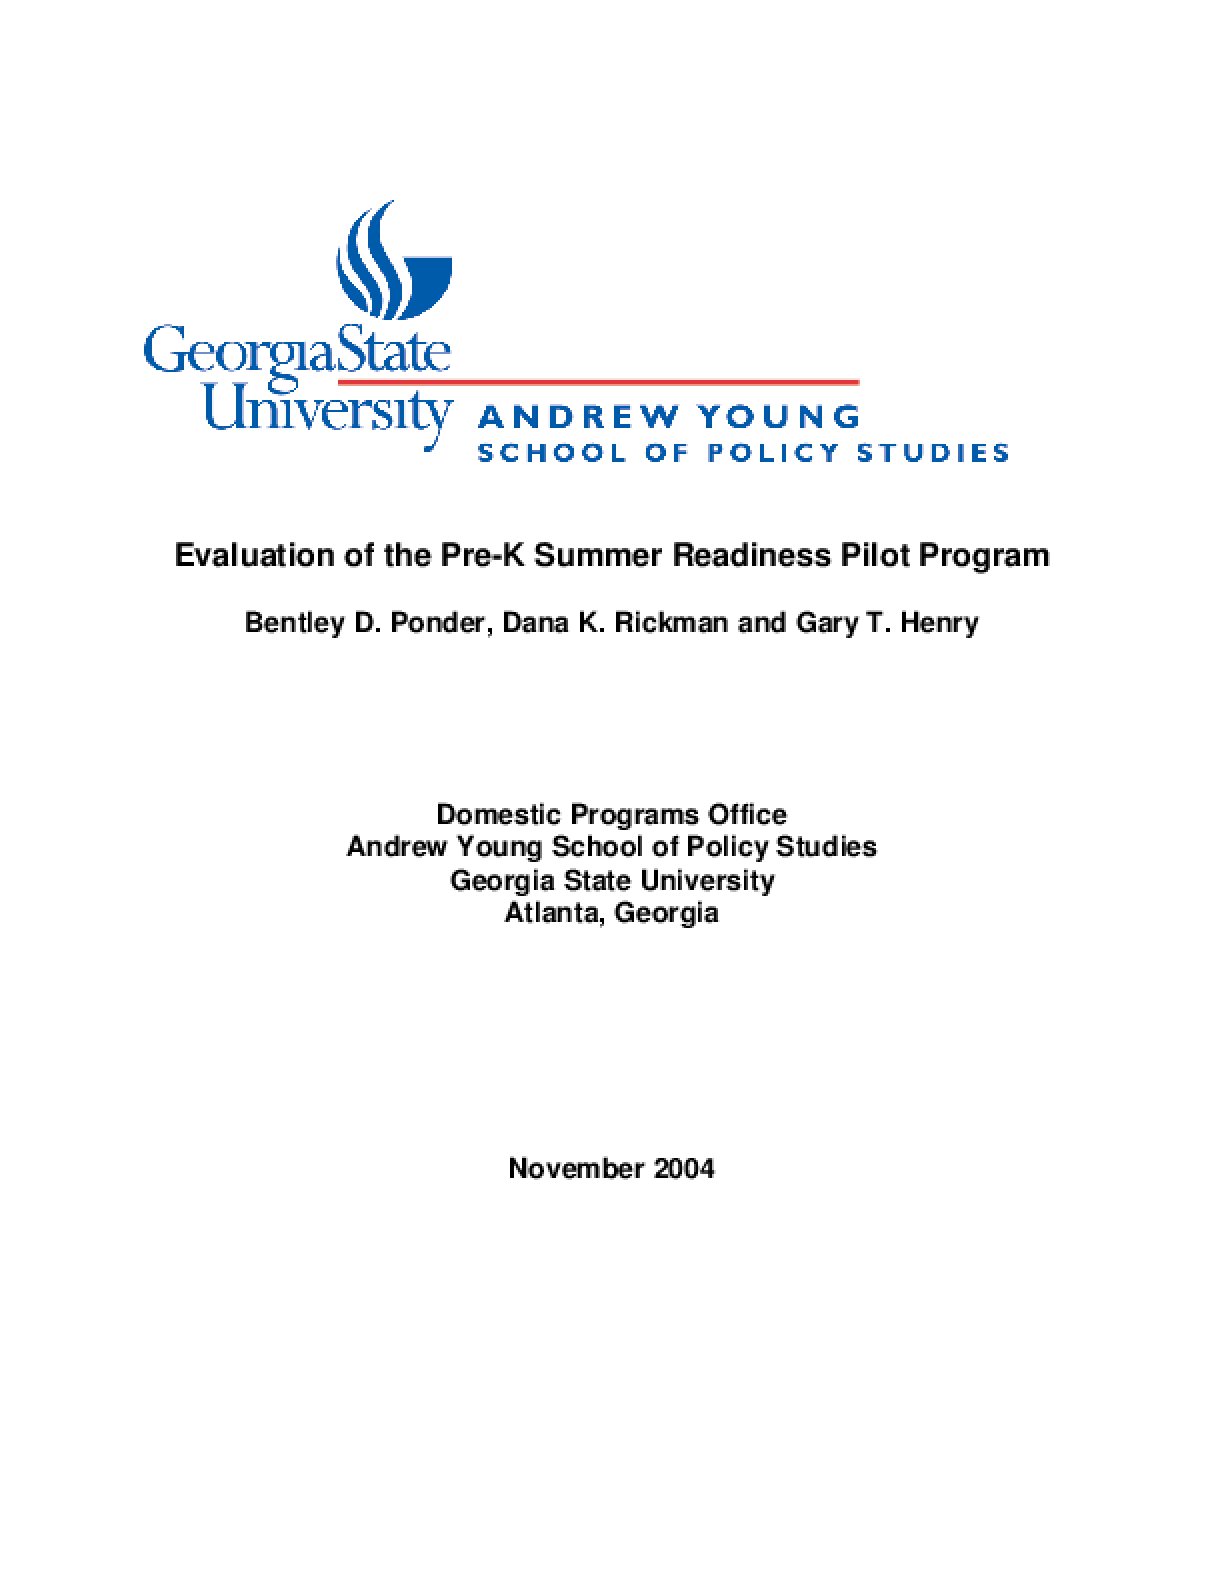 Evaluation of the Pre-K Summer Readiness Pilot Program